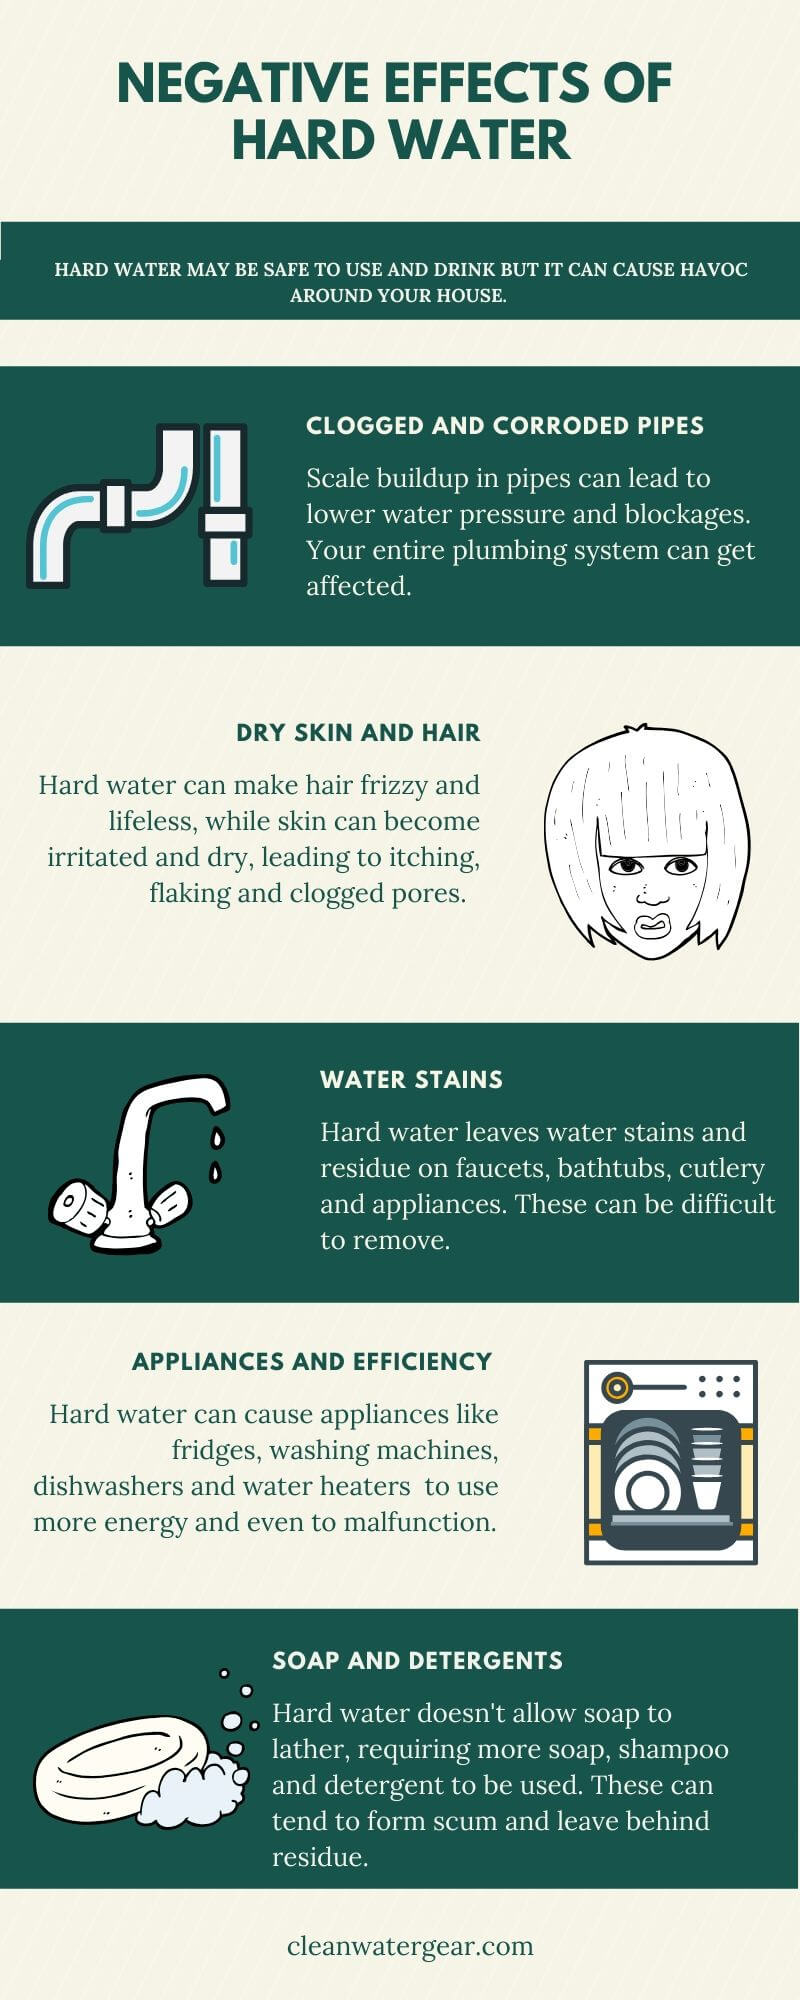 Negative effects of hard water